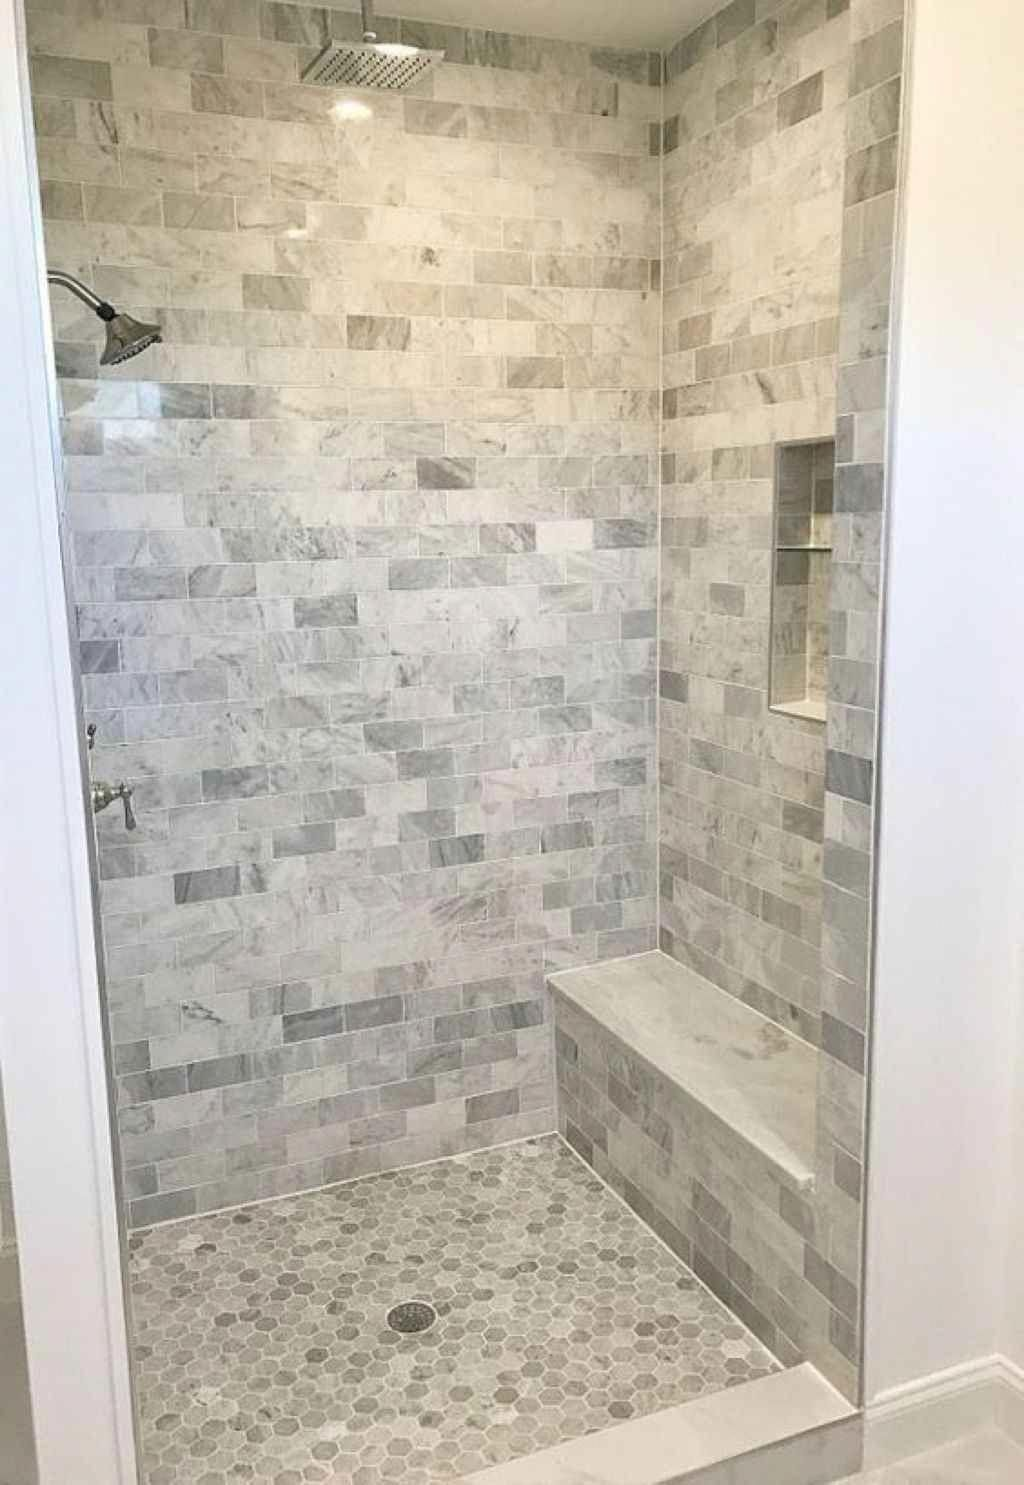 Not all homeowners have the ideal restroom. Do you? If not, you may wish to consider having your restroom remodeled. #restroomremodel